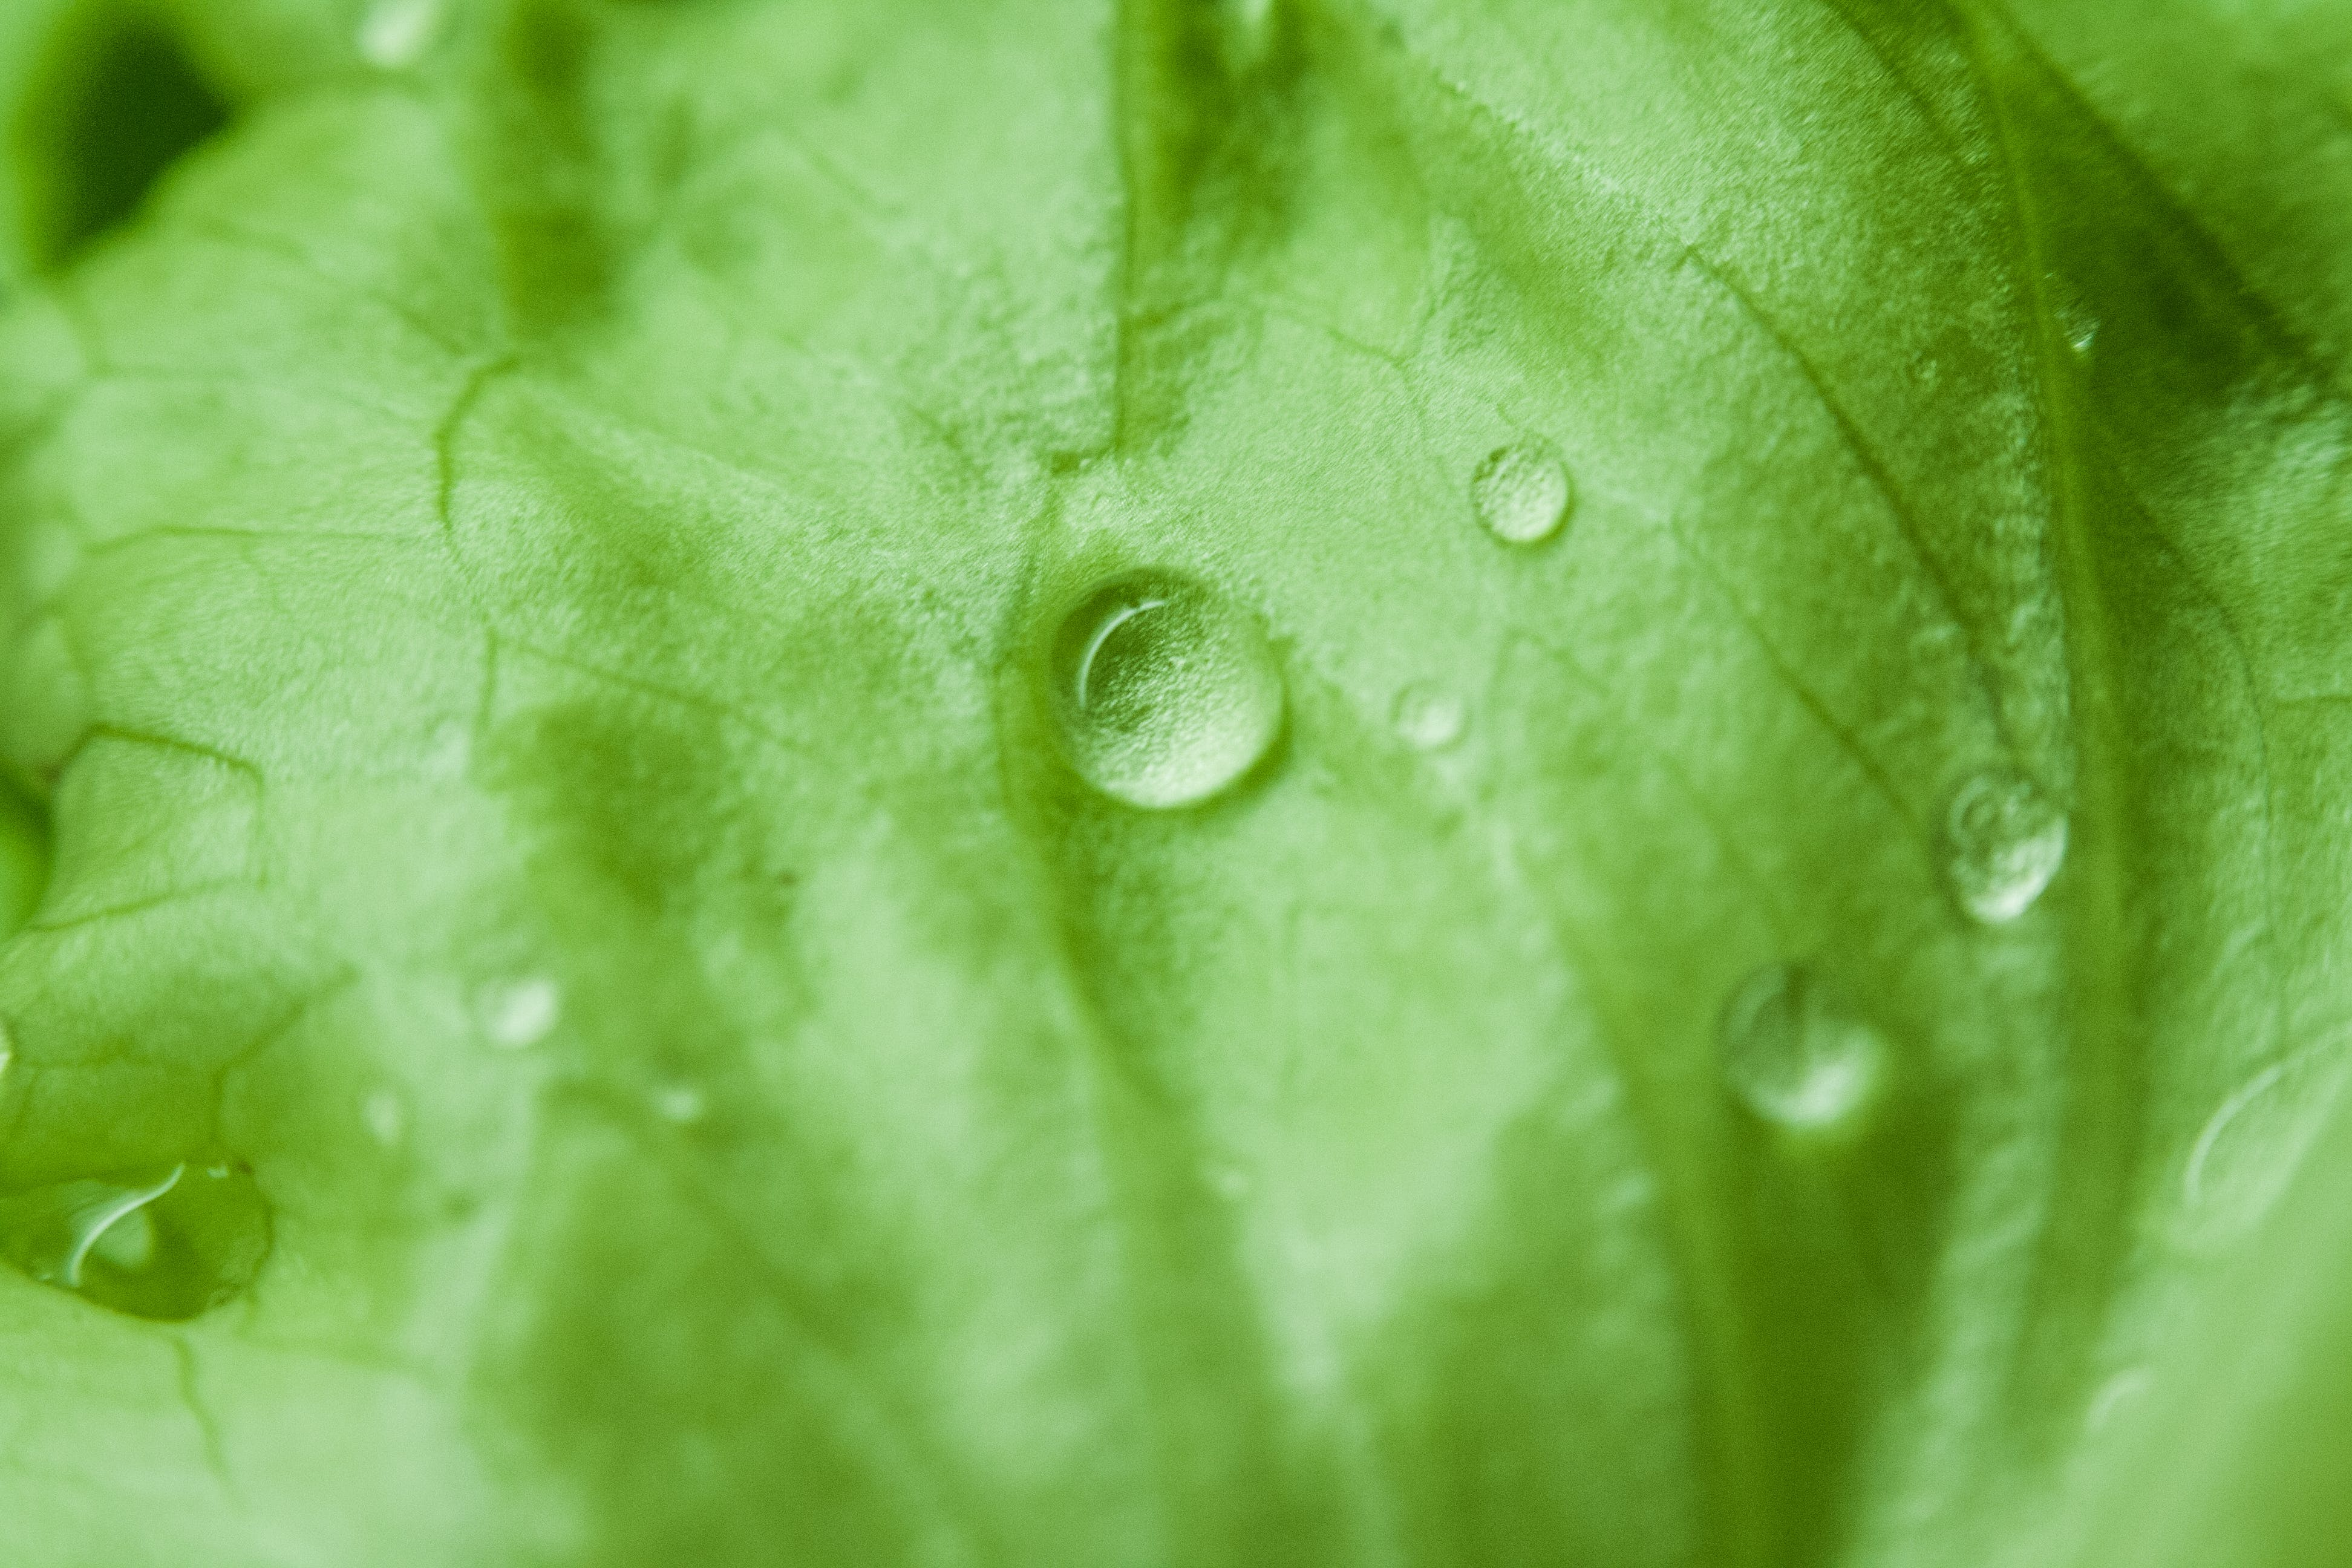 Green Leaf With Water Dew Focus Photography